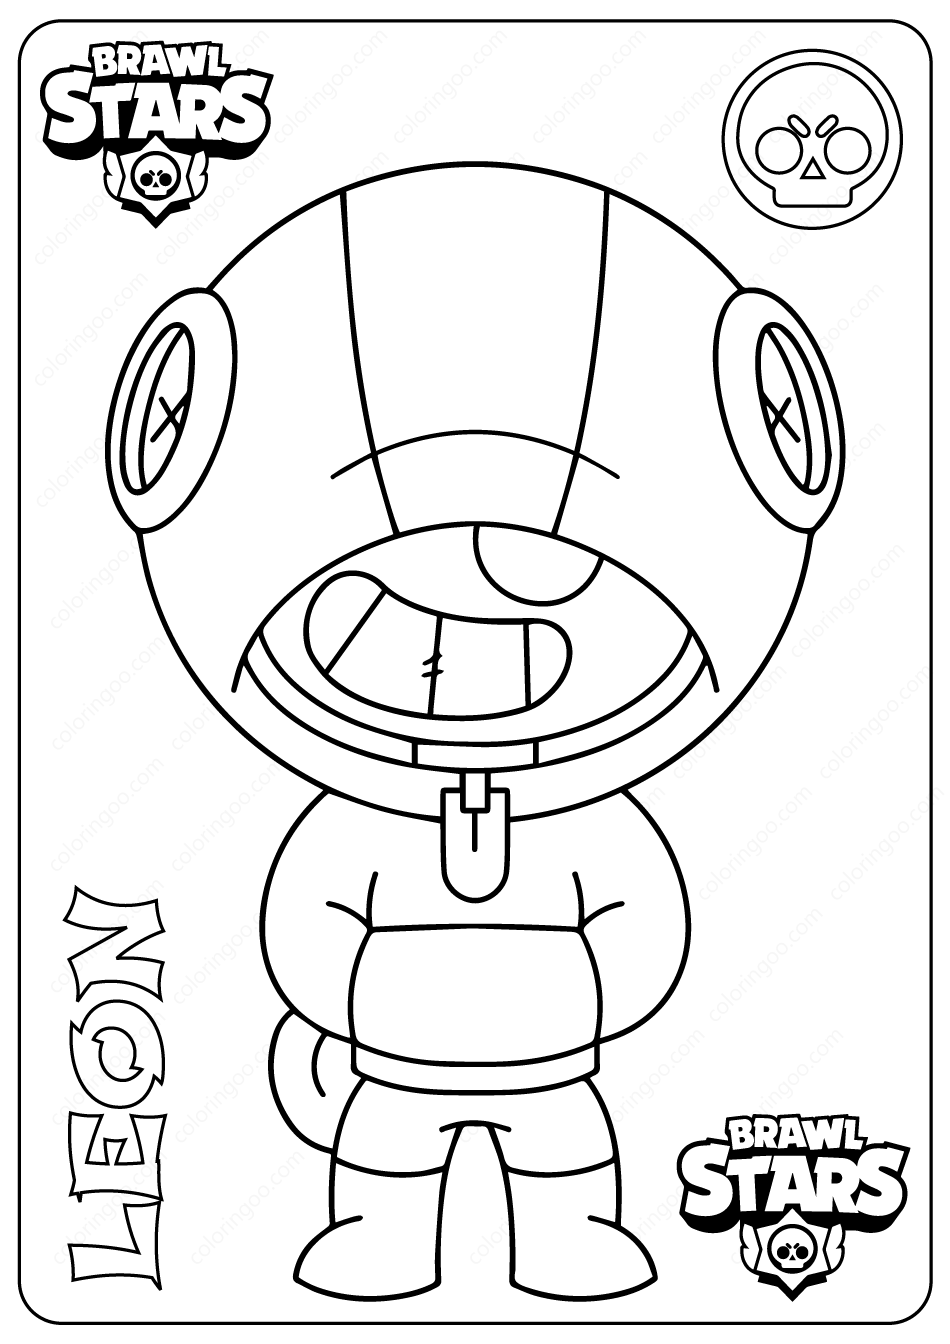 coloring pages with stars brawl stars coloring pages download and print brawl stars with coloring stars pages